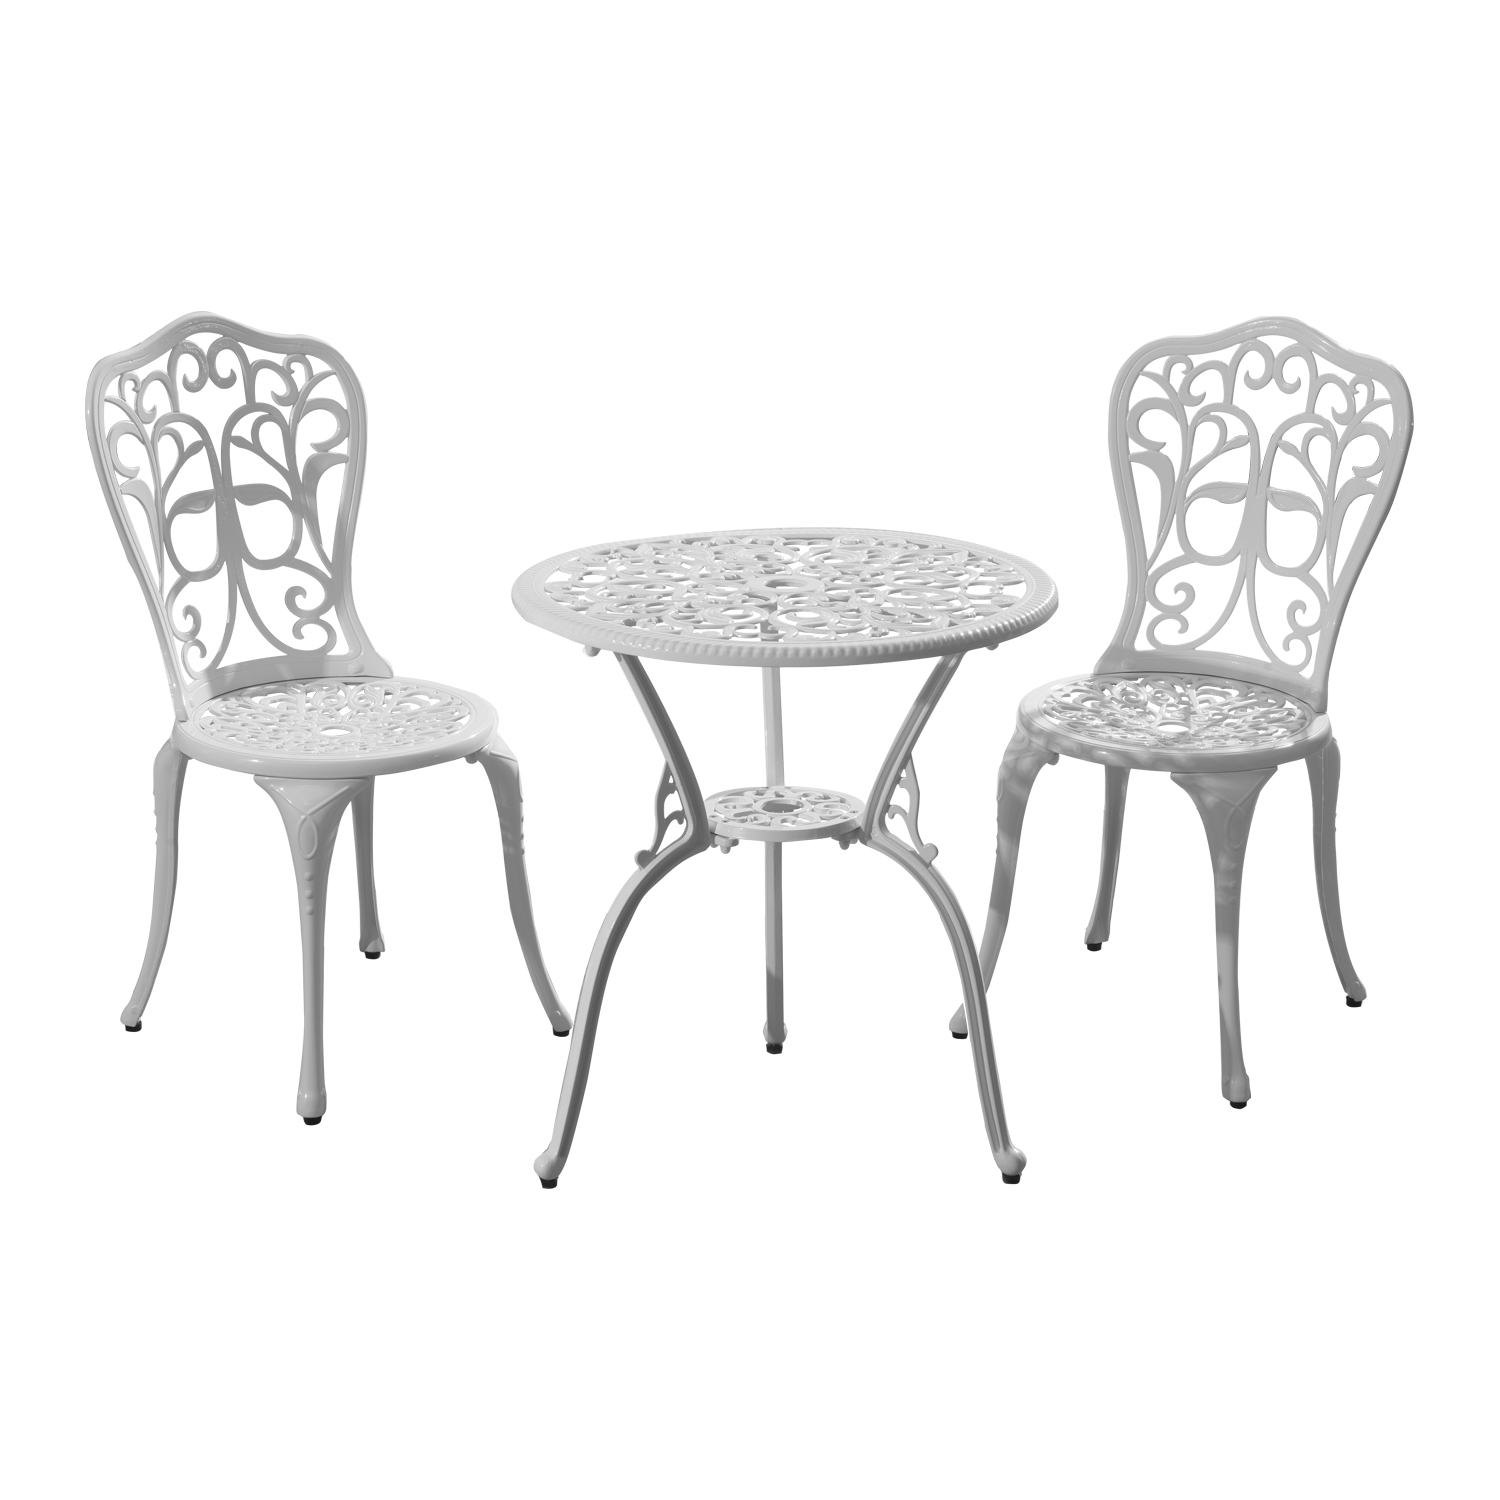 Outsunny 3pc All-Weather Bistro Outdoor Table and Chair Set